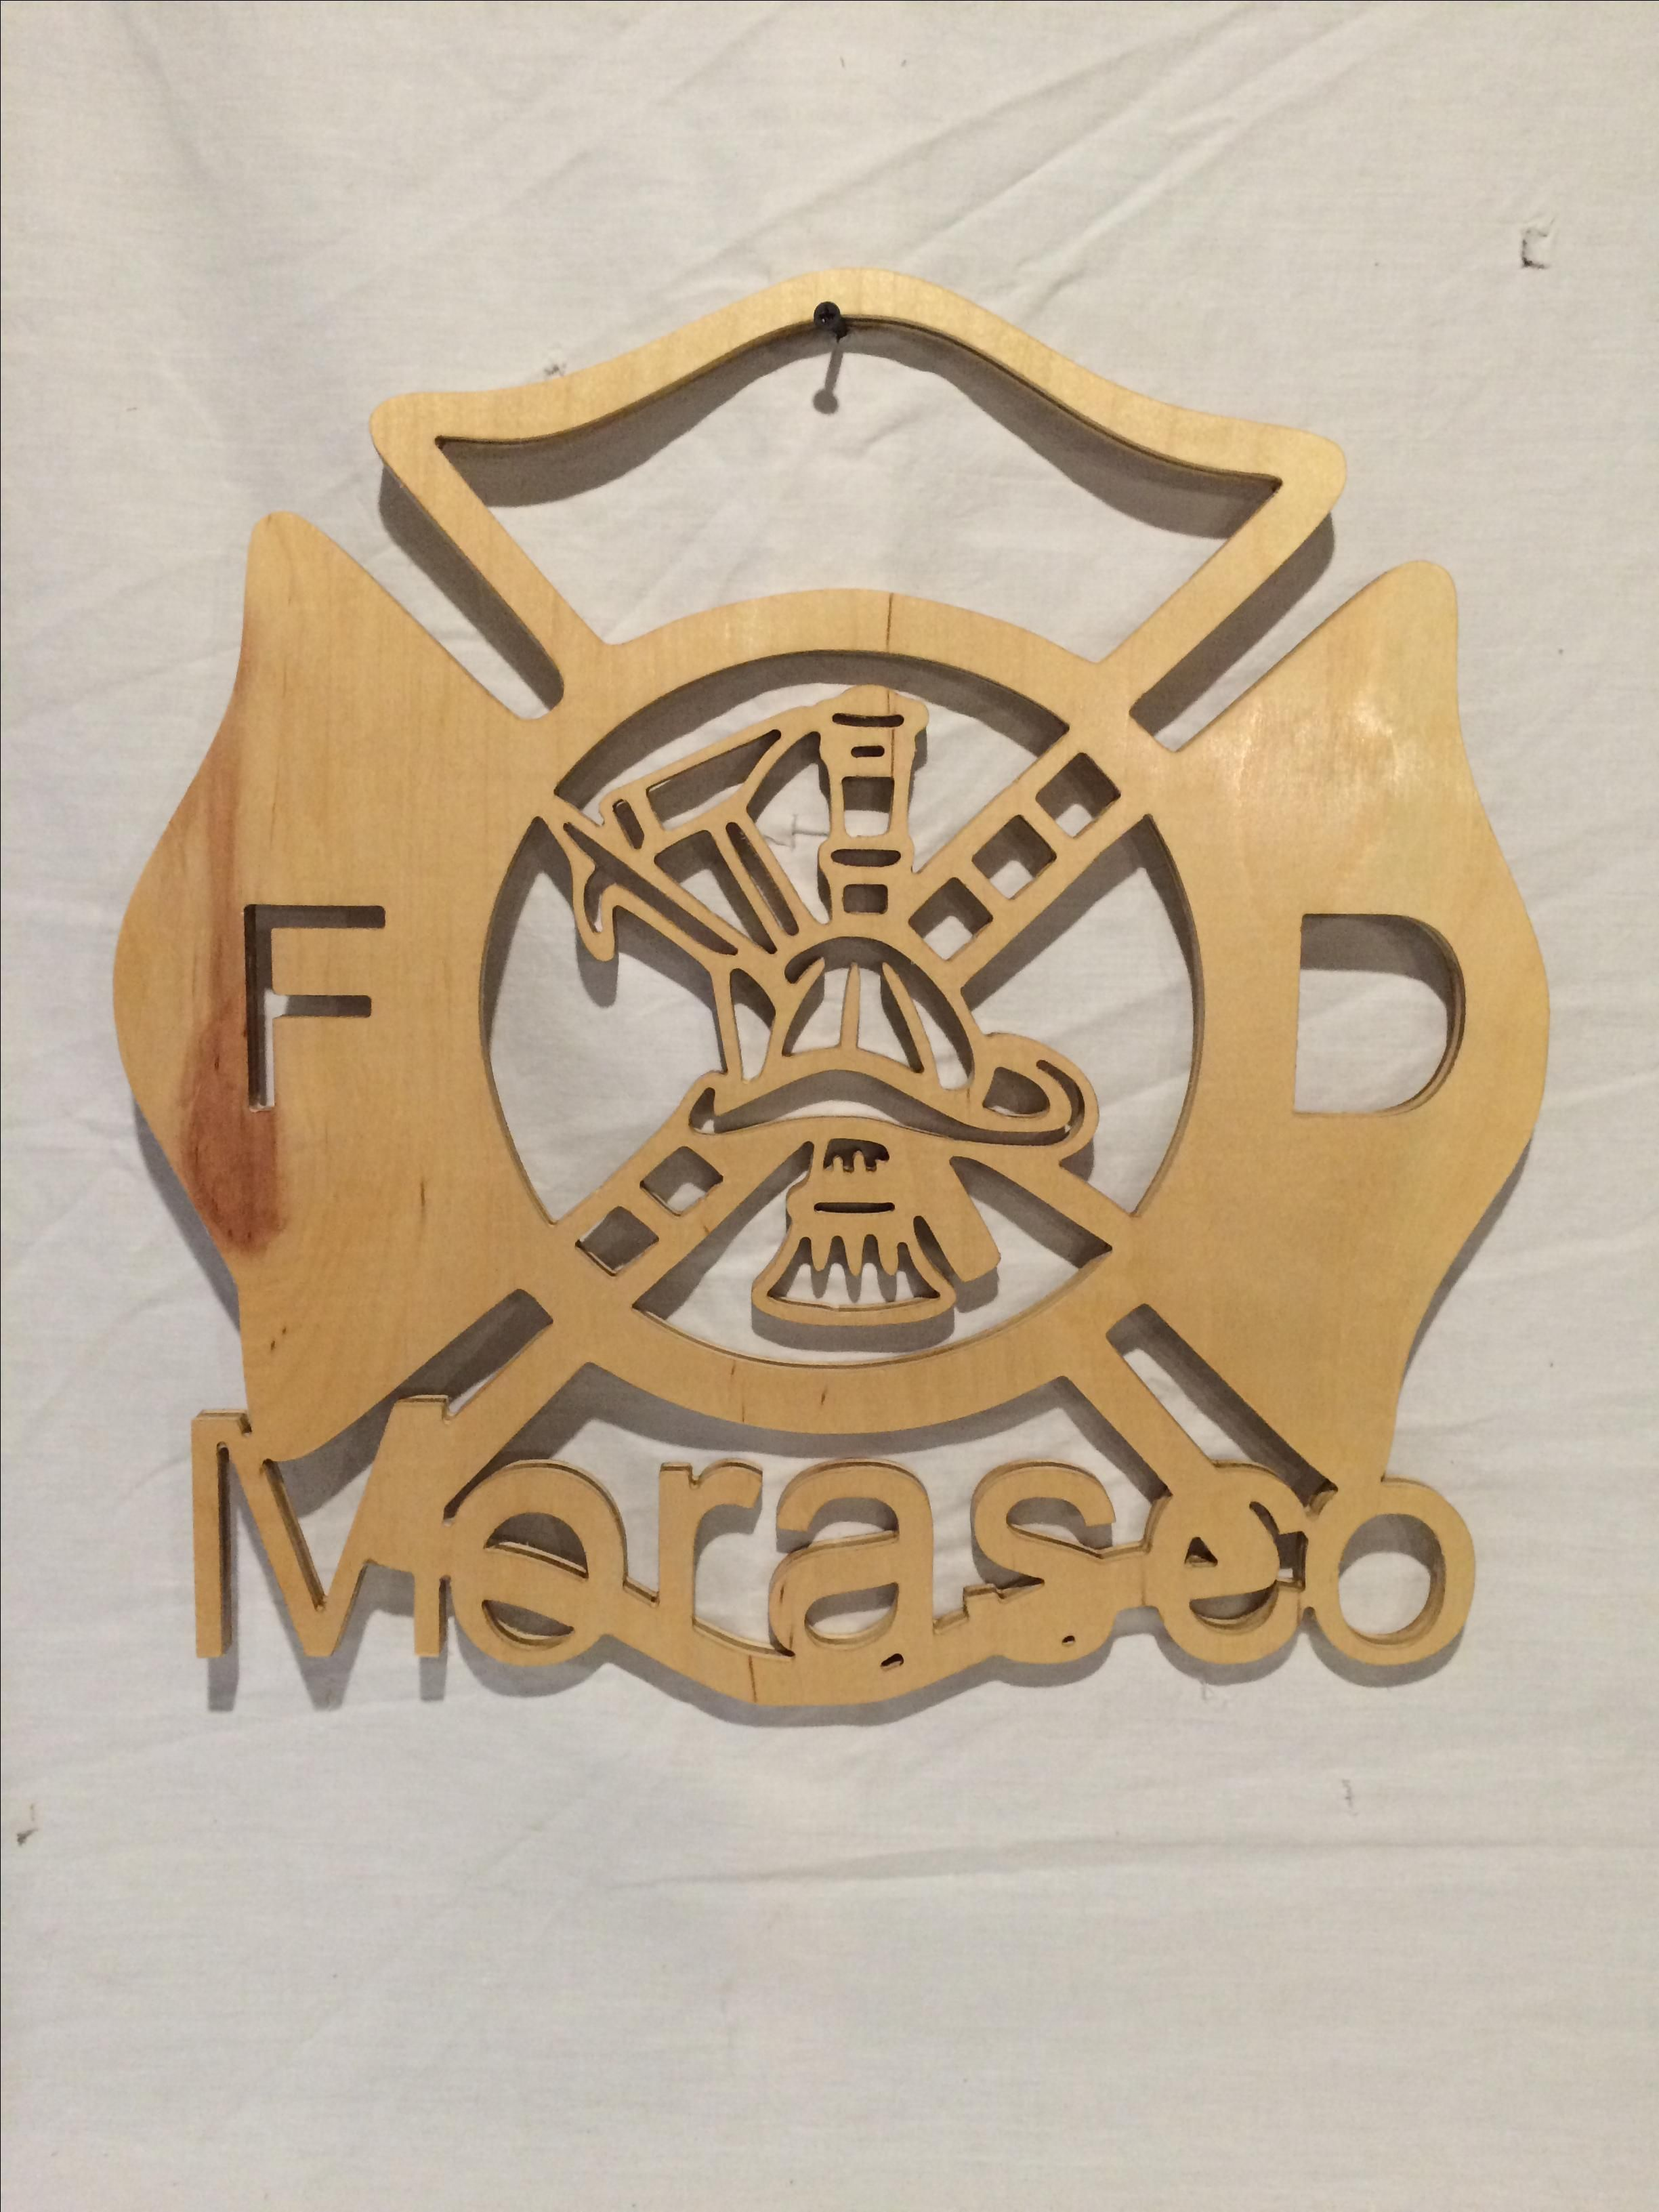 Buy A Custom Maltese Cross Wood Cut Out With Your Name